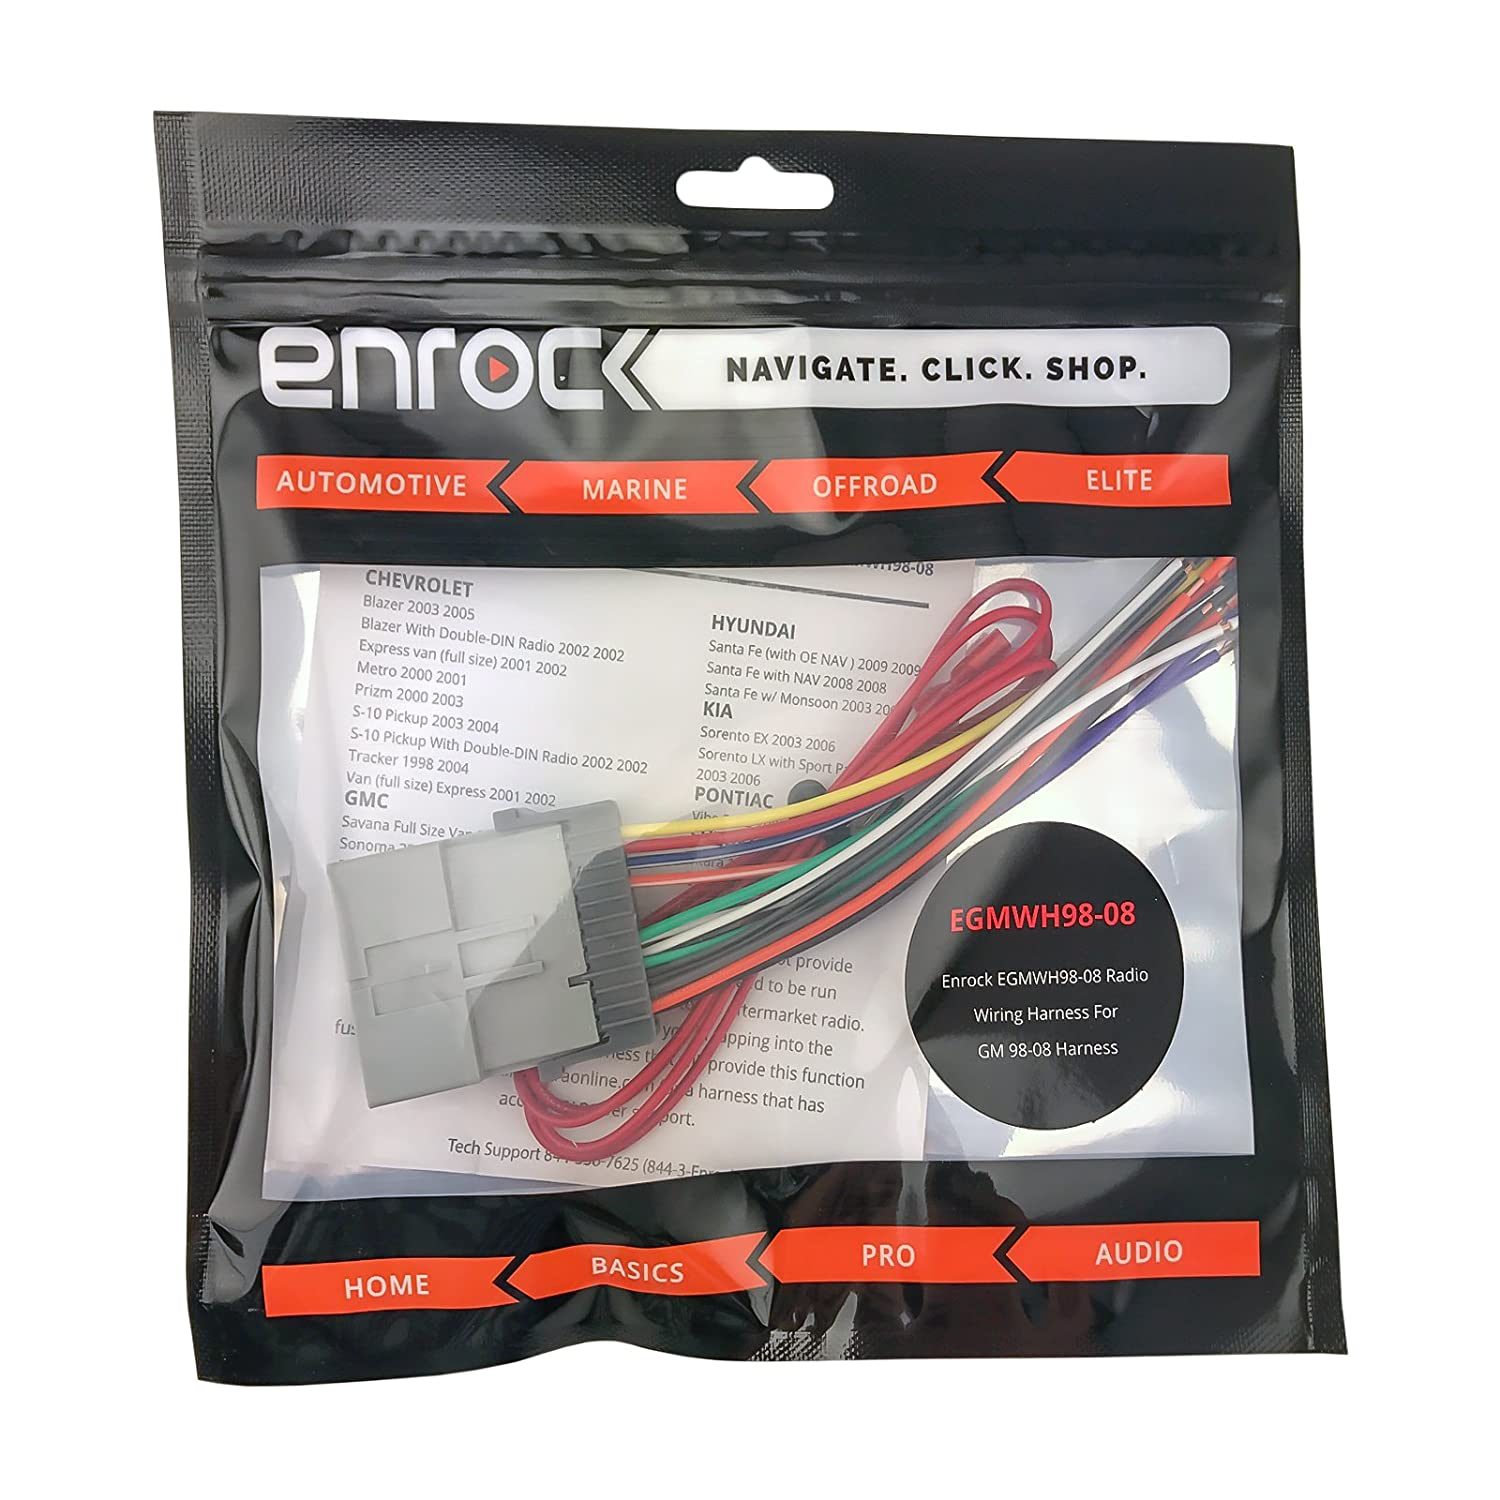 Enrock Wiring Harness For Connection Of A Stereo Chevrolet Blazer Select Gm Pontiac And Toyota Vehicles 2000 2008 Car Electronics